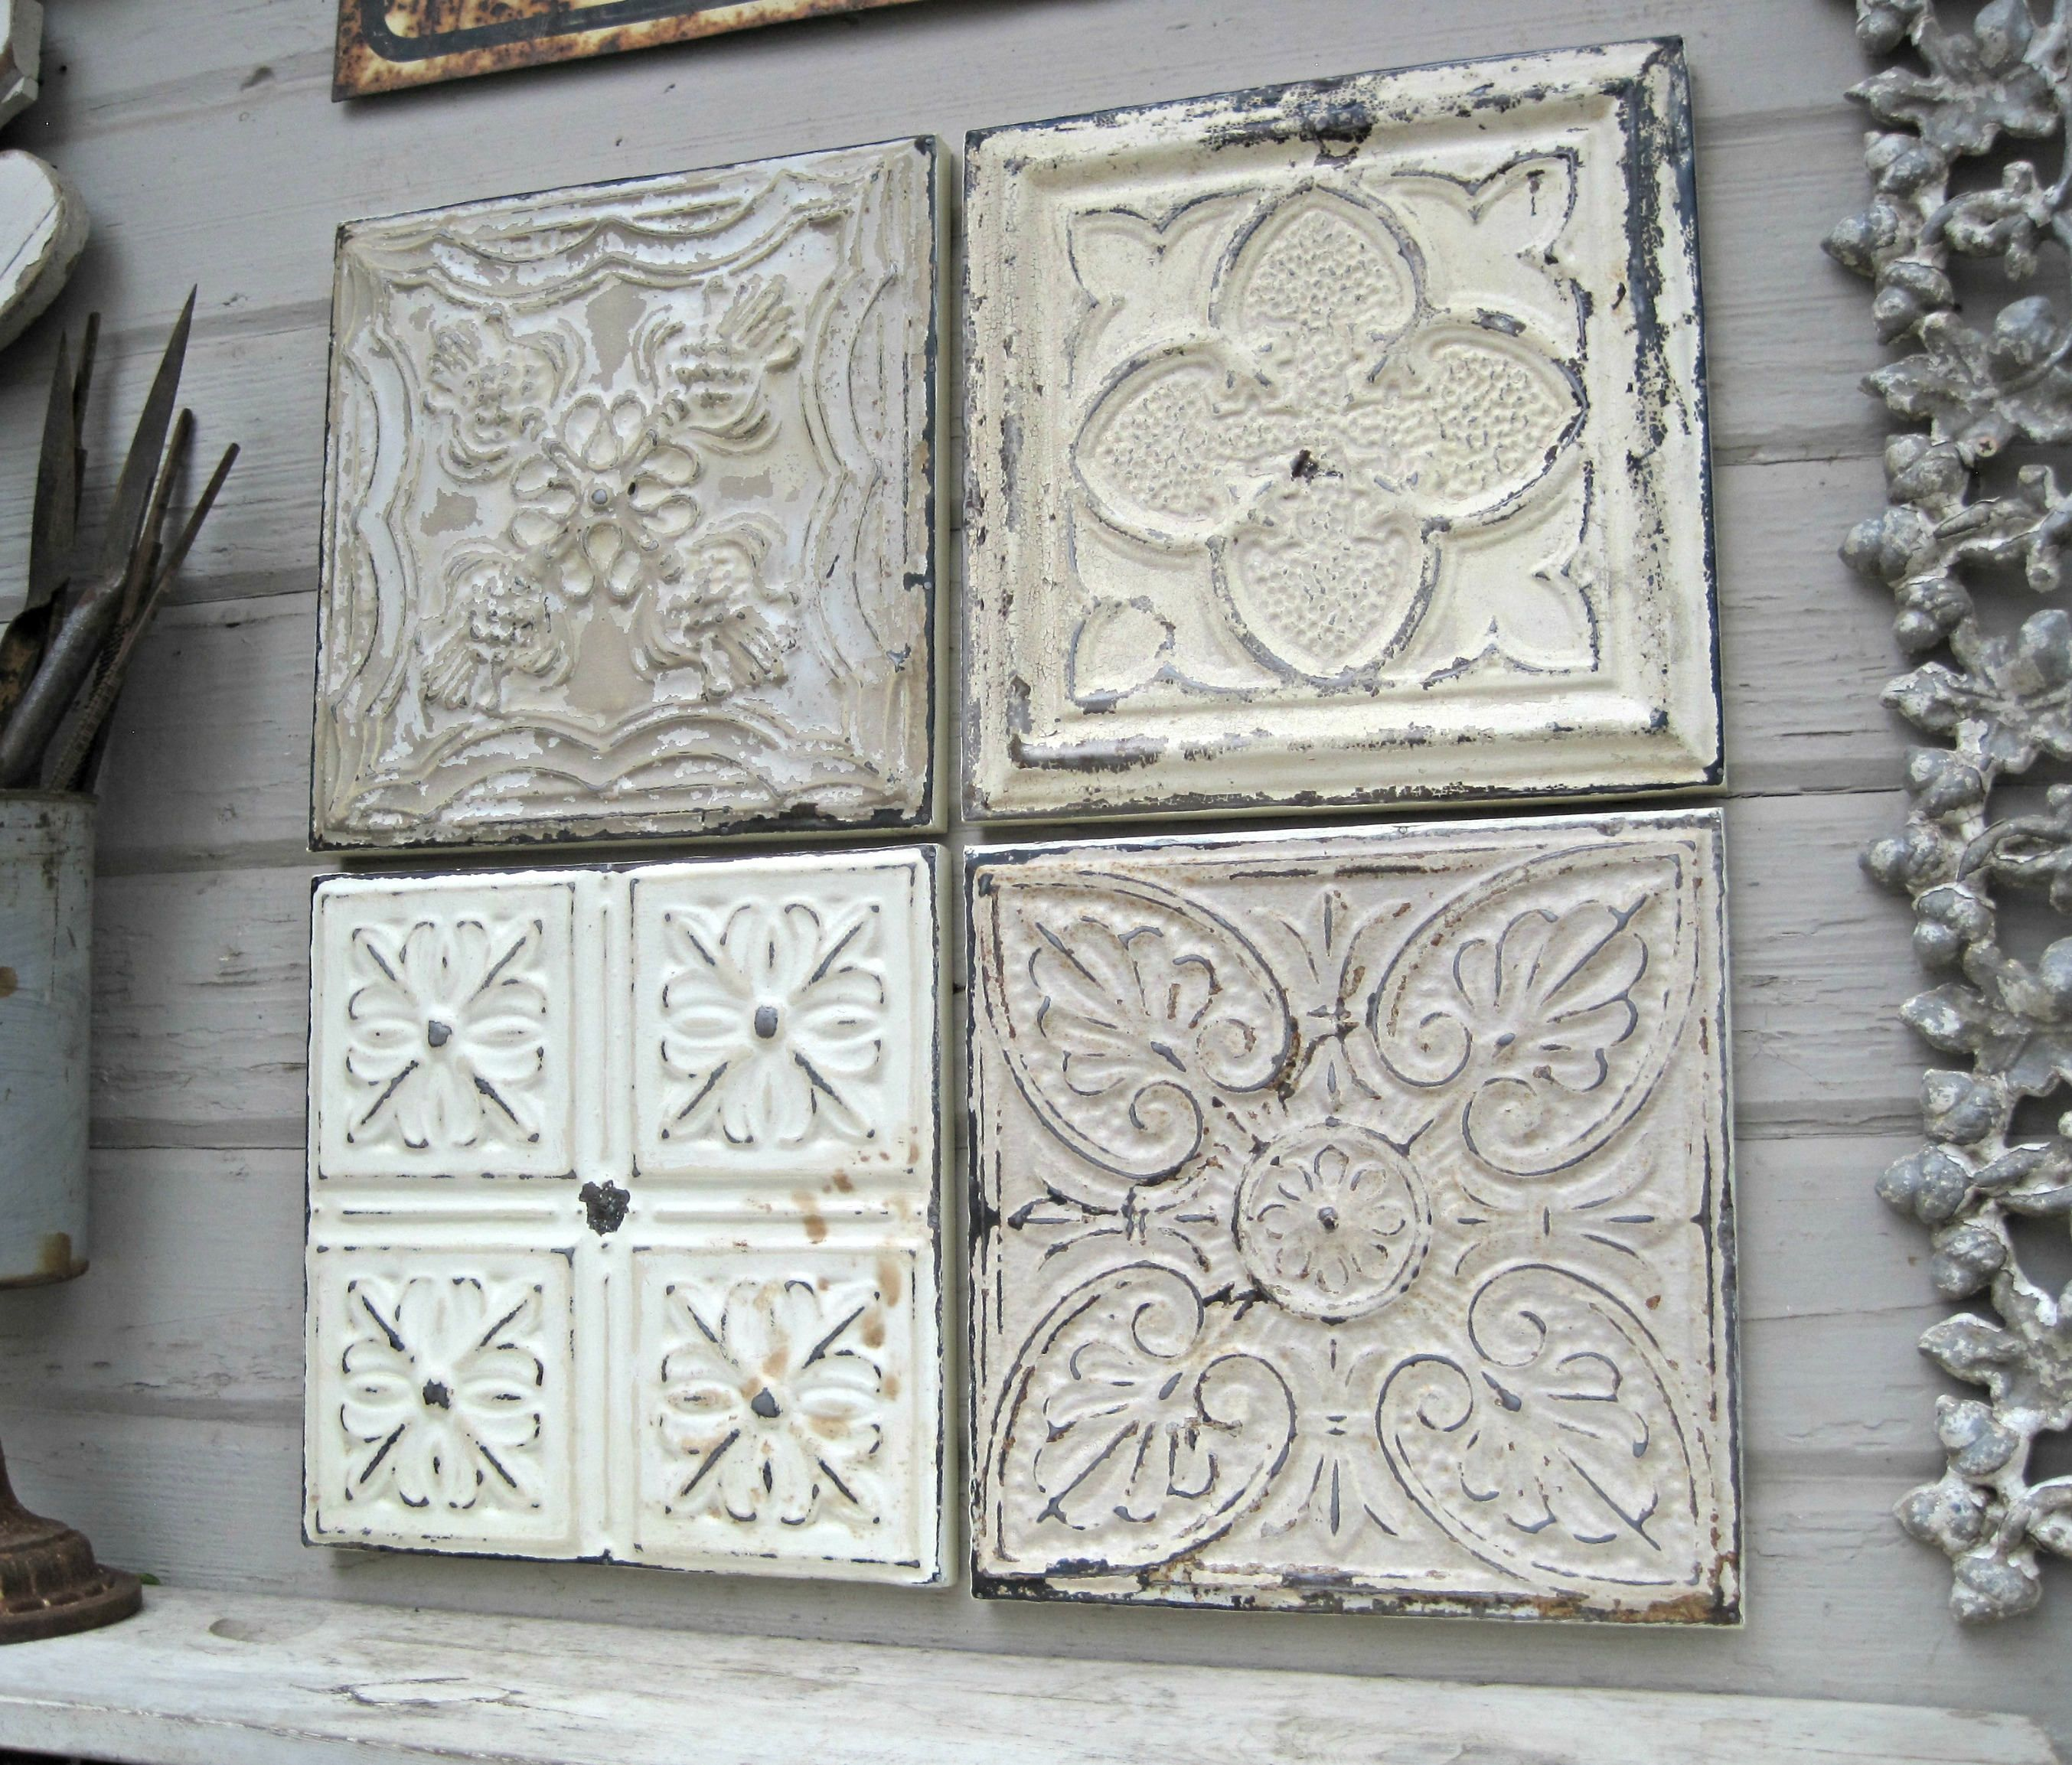 Rustic wall decor antique architectural salvage framed ceiling